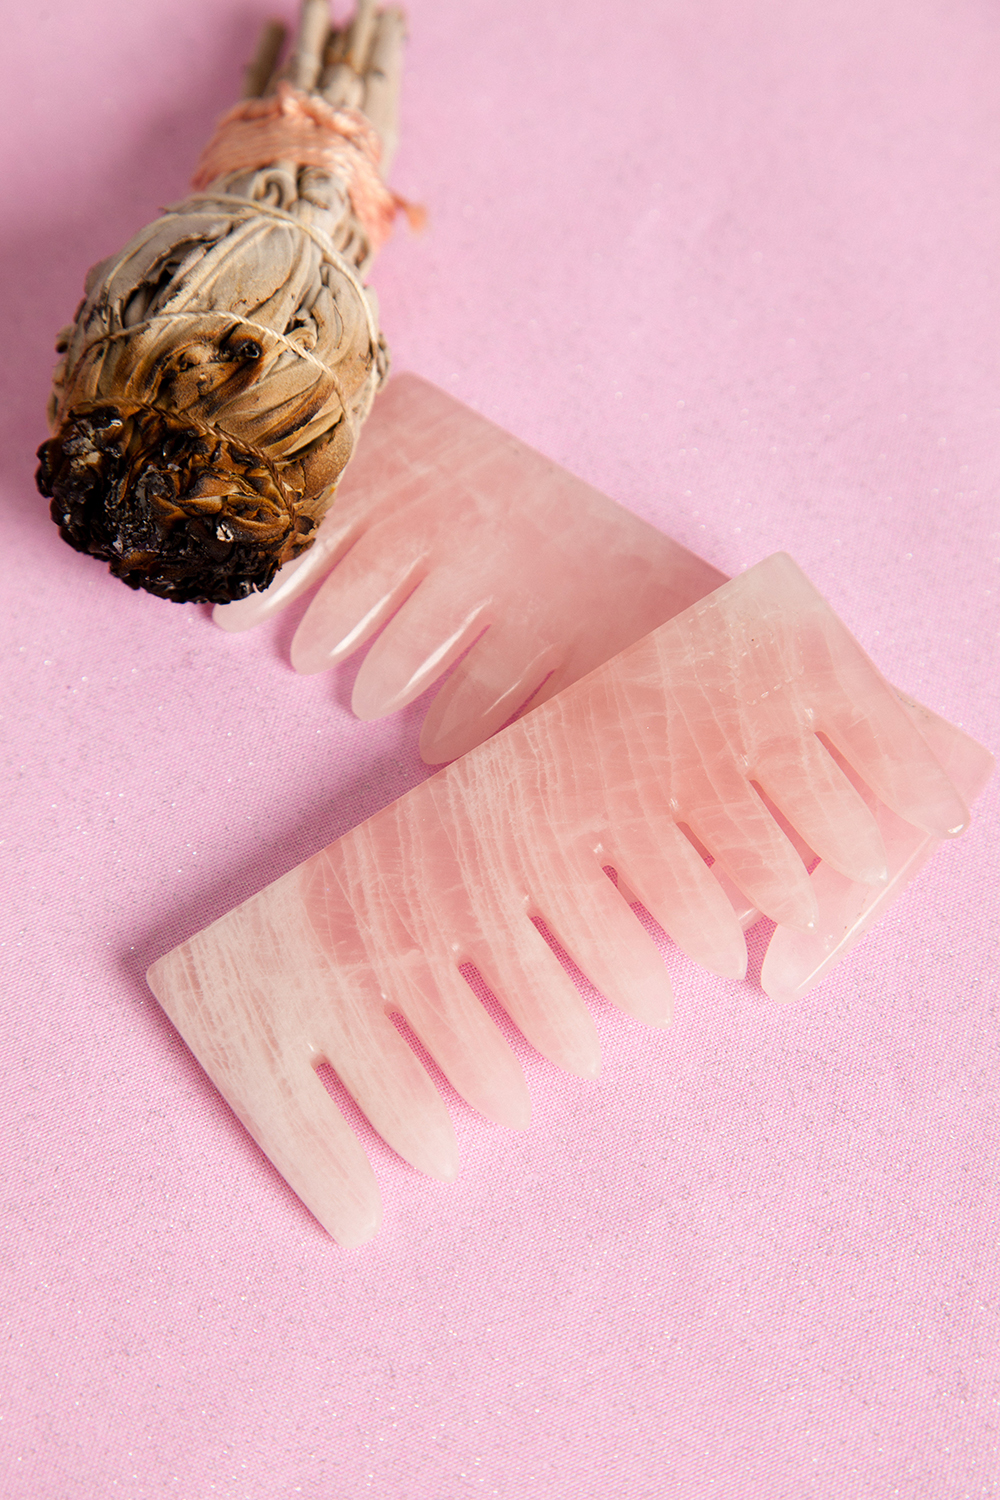 CrownWorks combs are available in 4 varieties, including rose quartz (pictured).